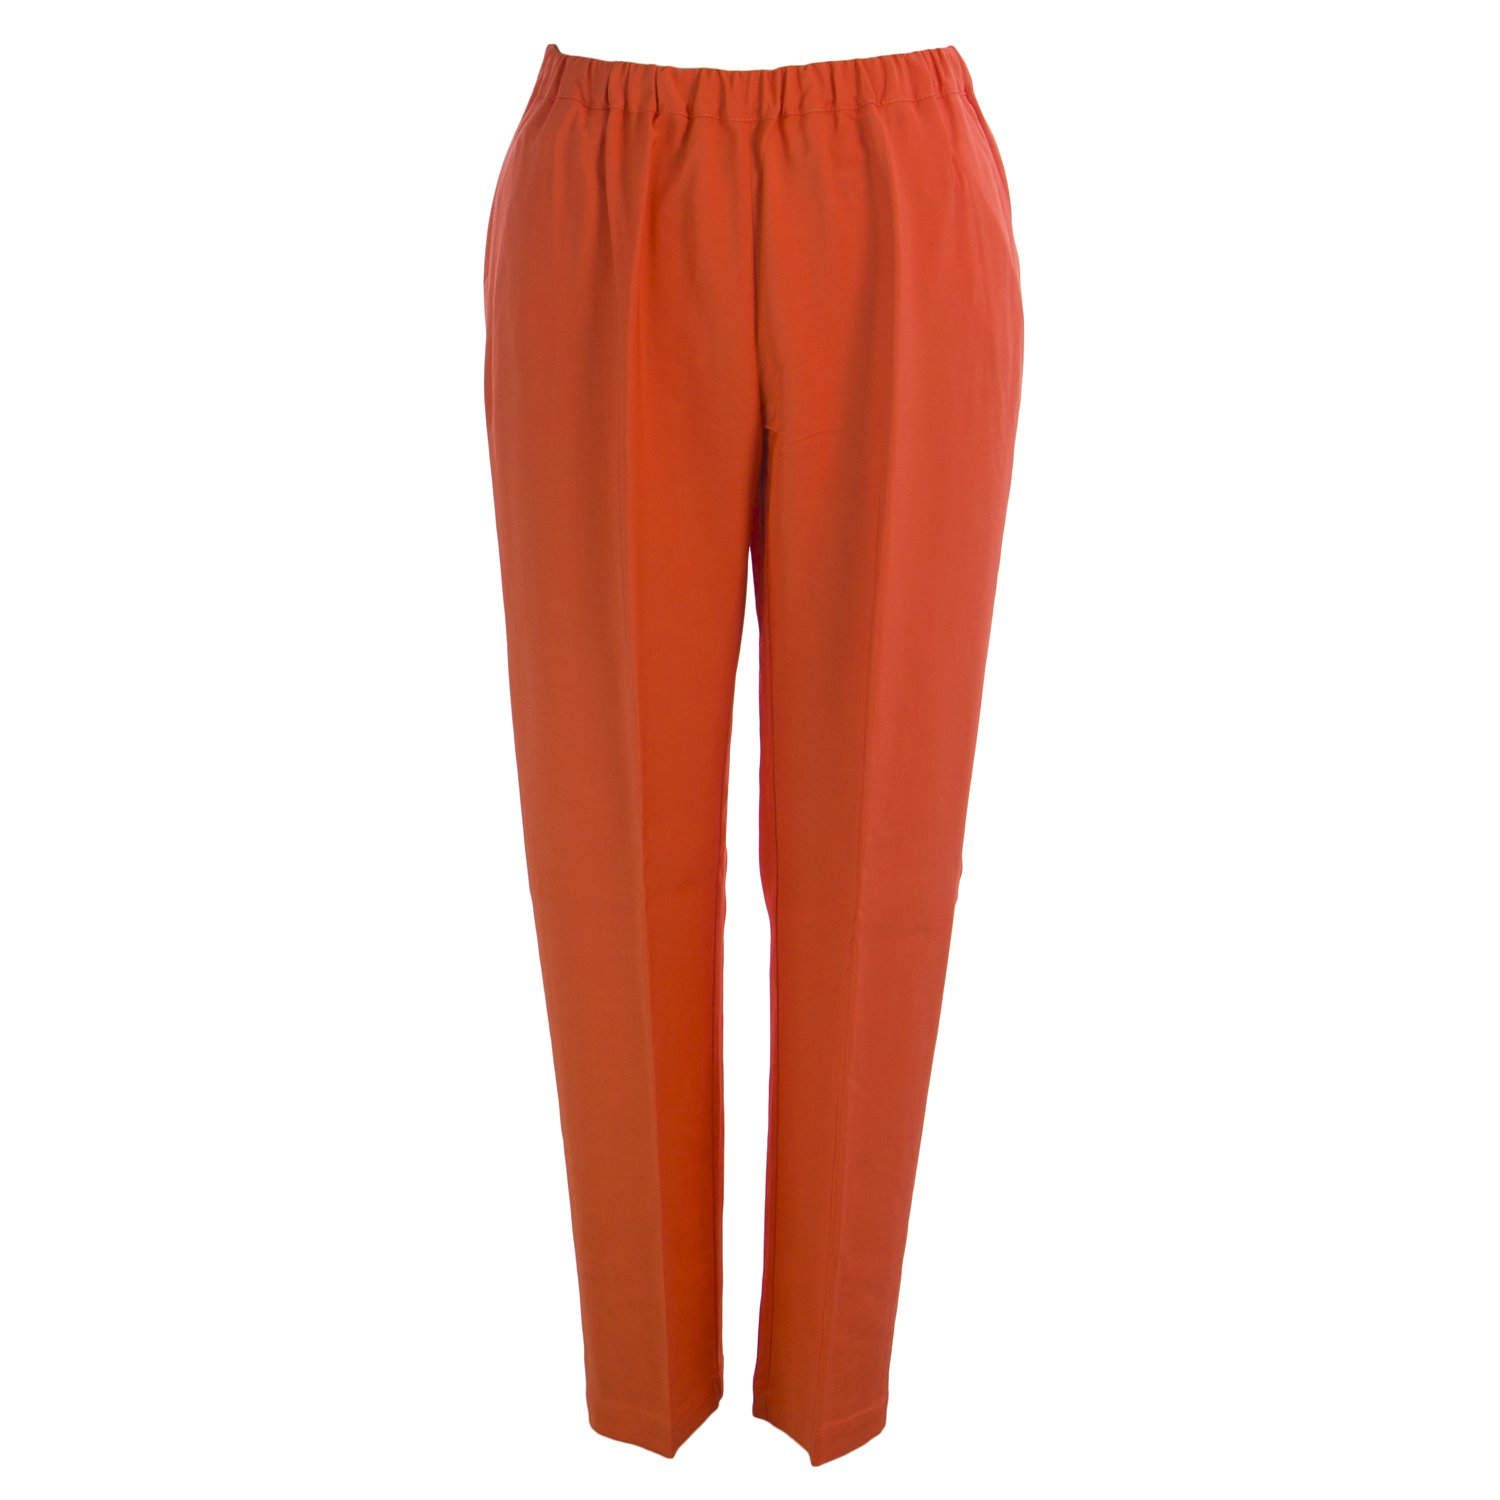 Marina Rinaldi Women's Re Elastic Waist Trousers 22W / 31 Orange